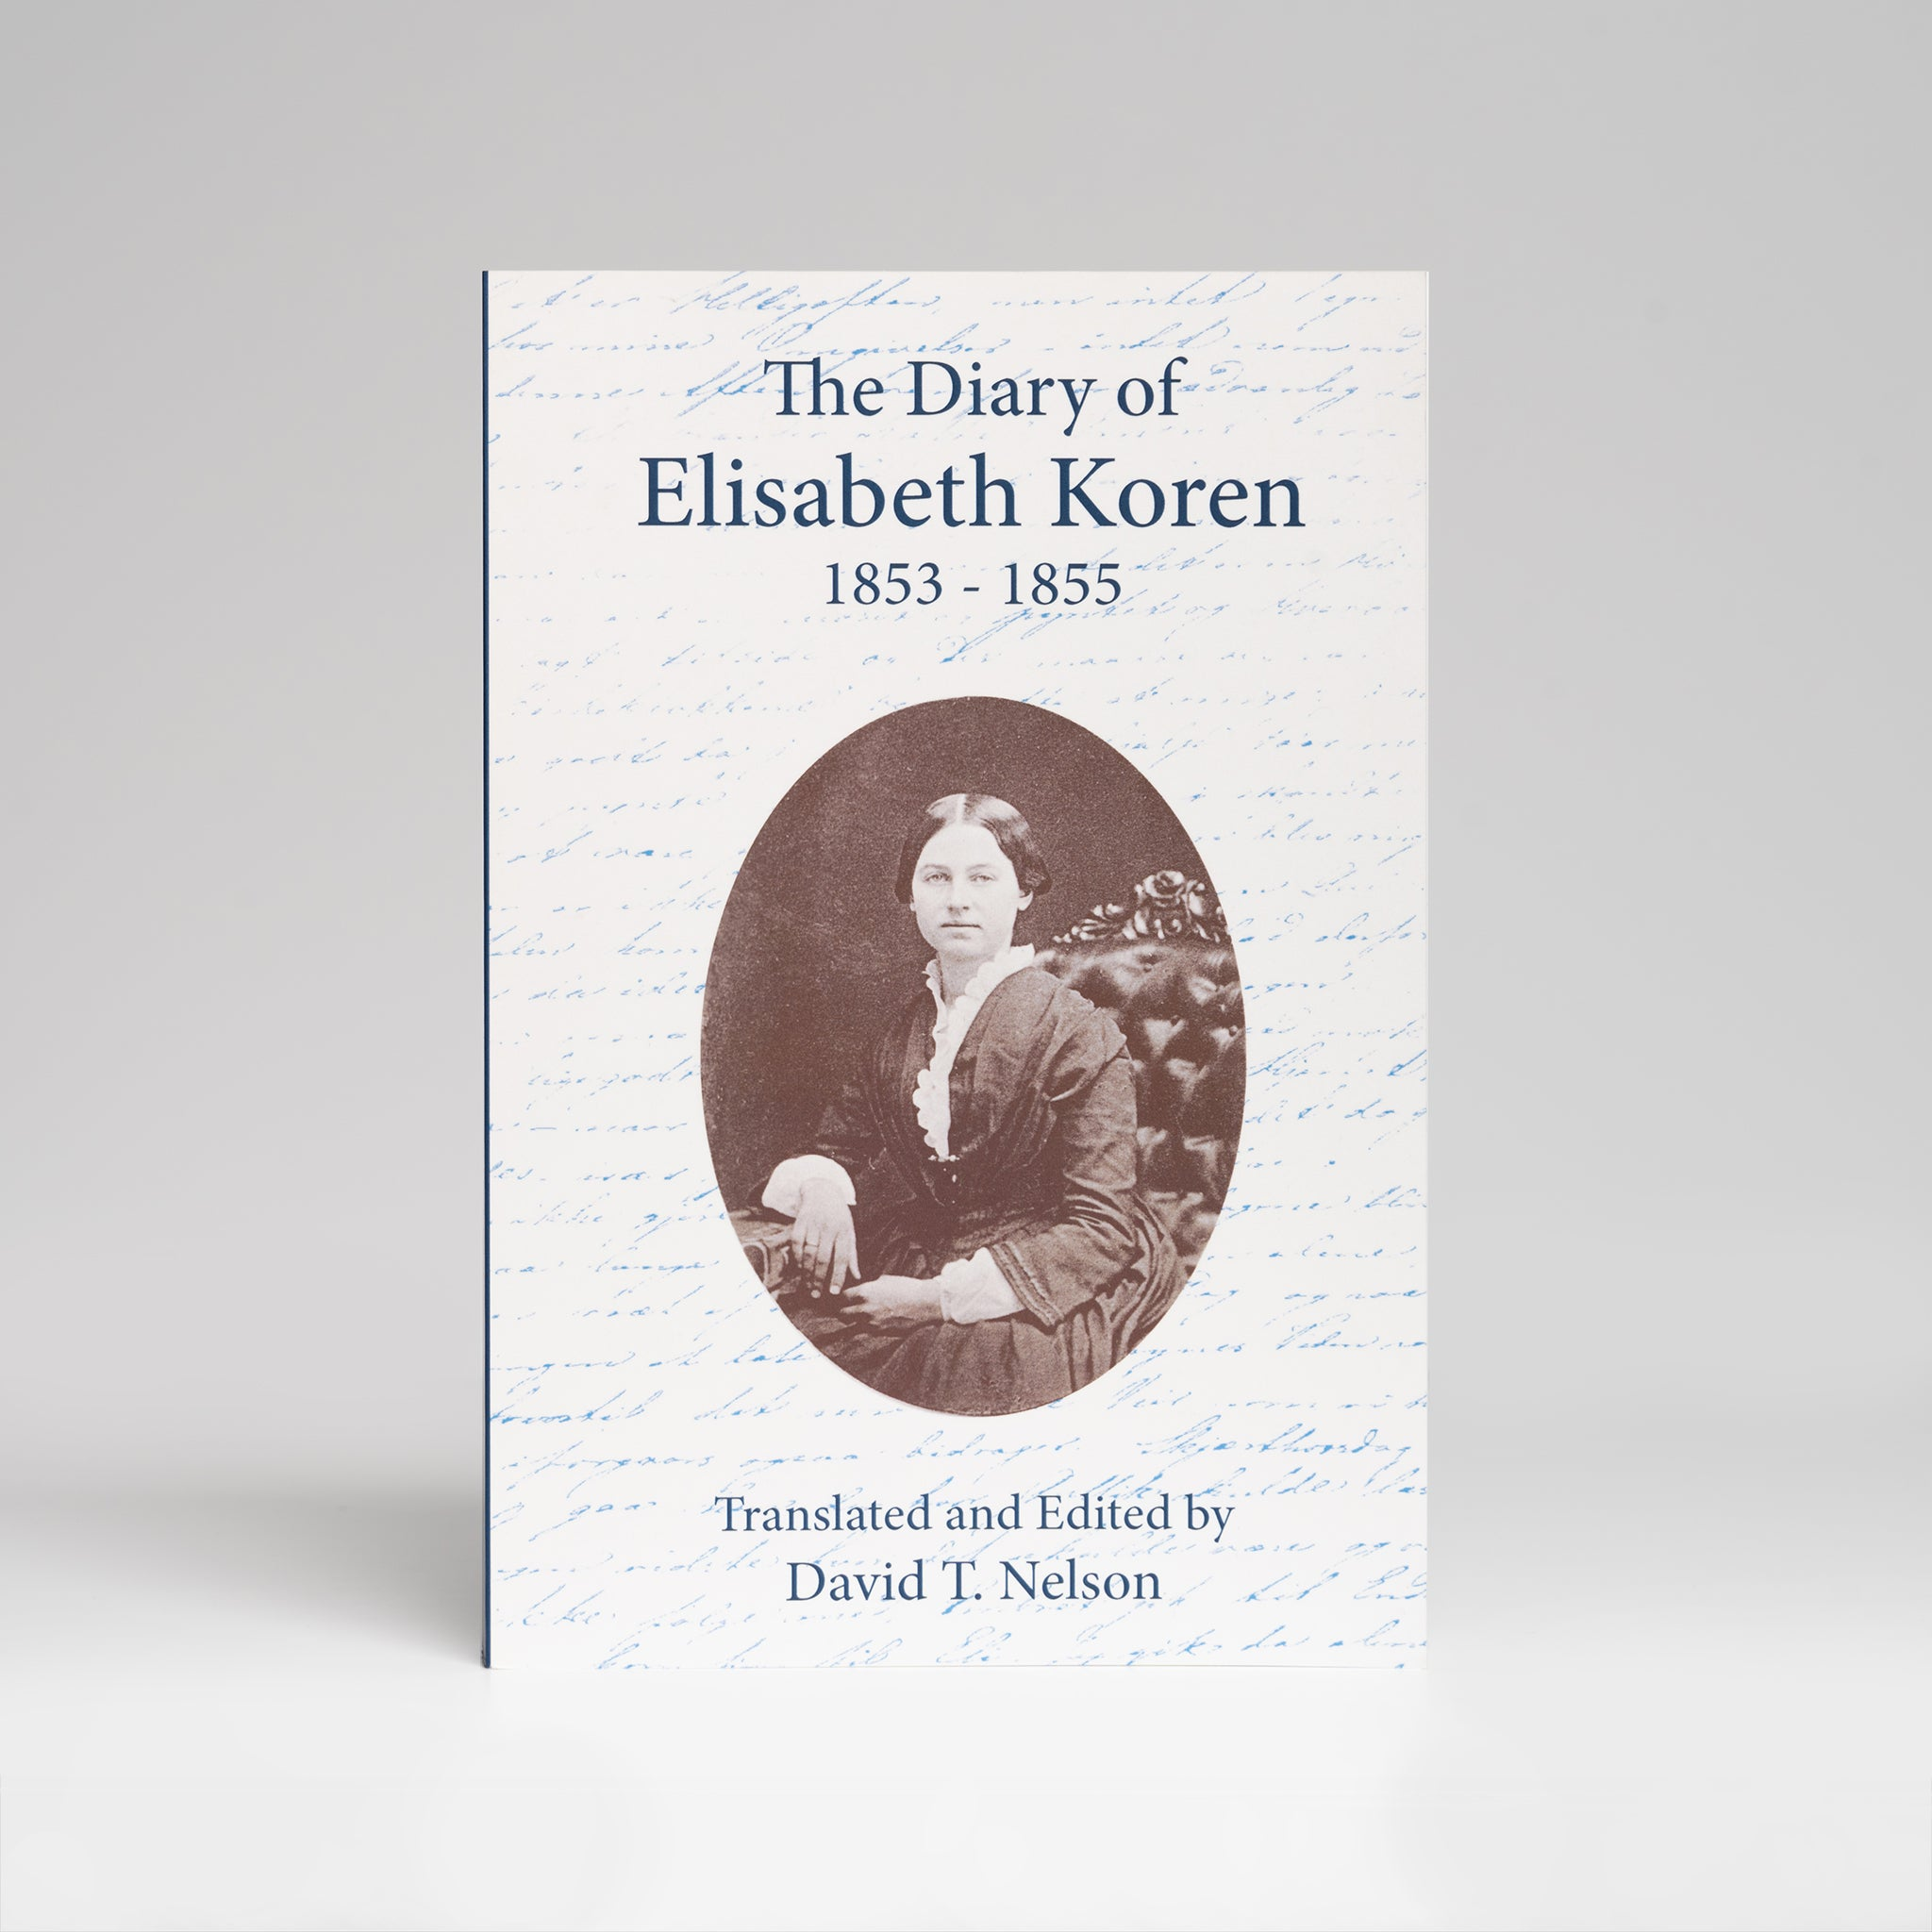 The Diary of Elizabeth Koren 1853-1855 by David T Nelson